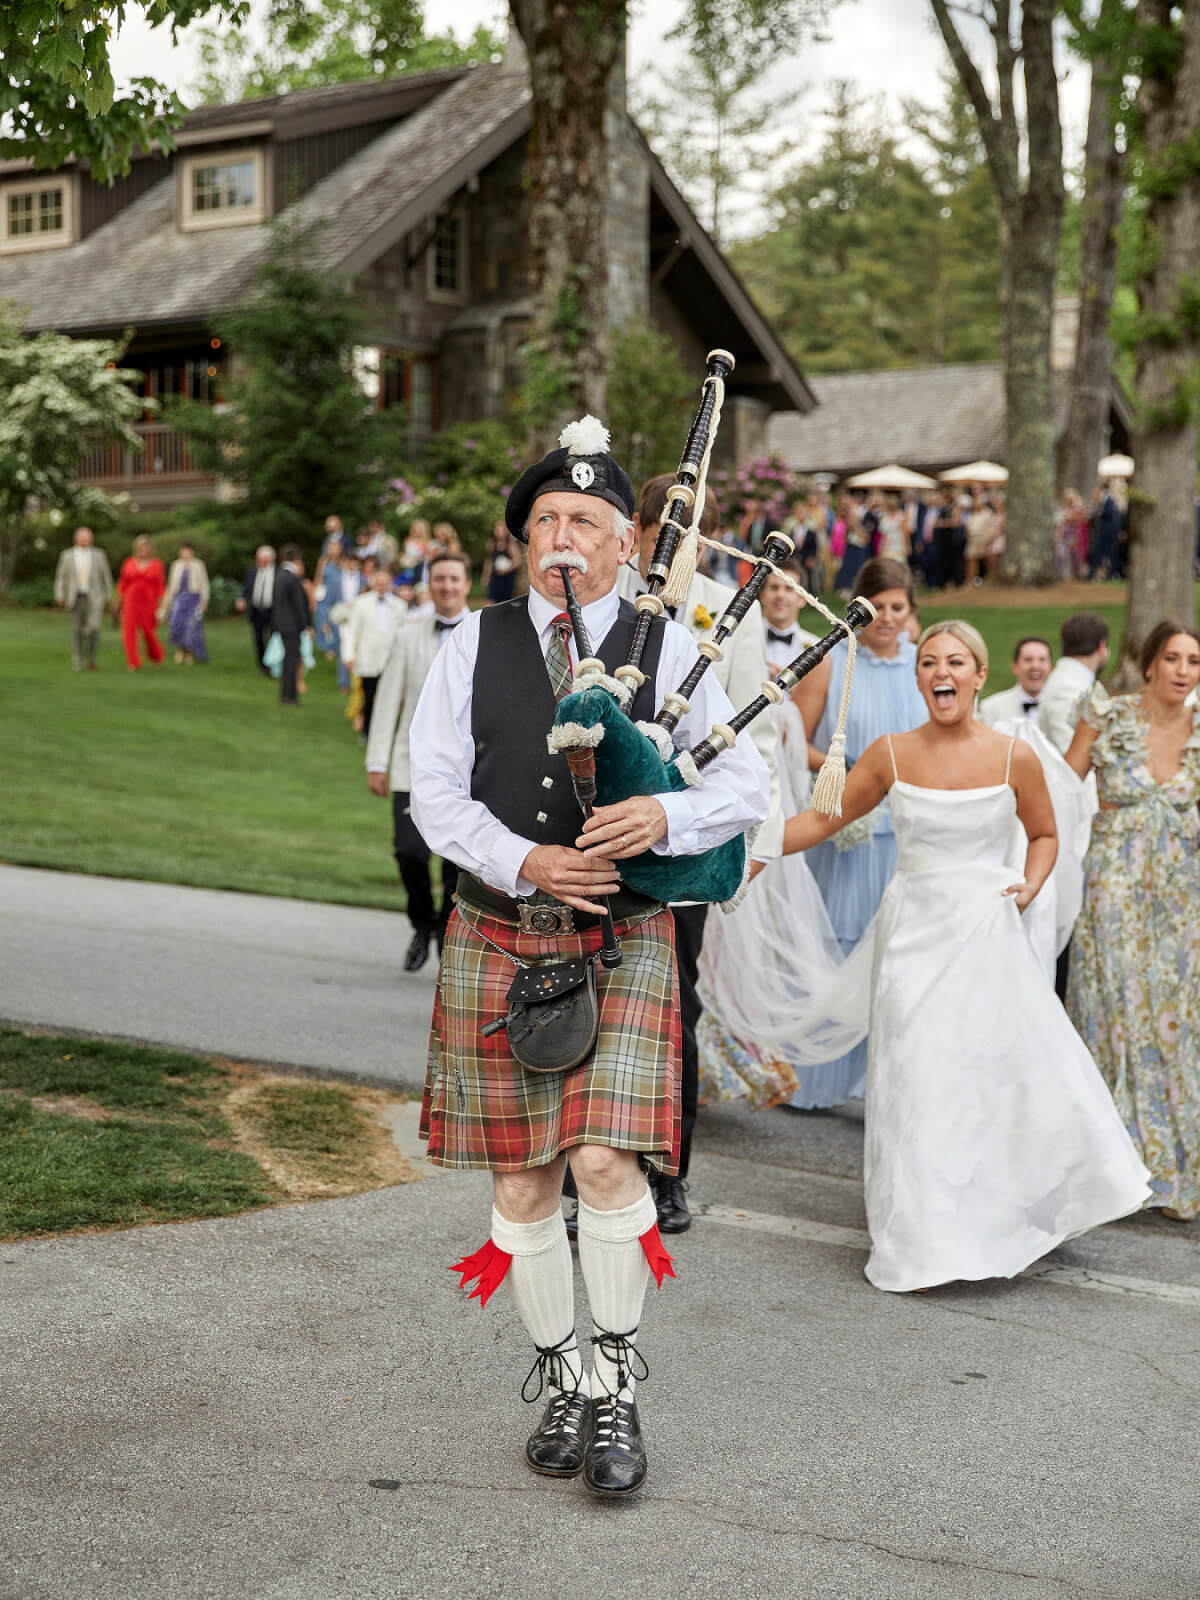 A bagpiper leads the bride, groom and their guests to the reception